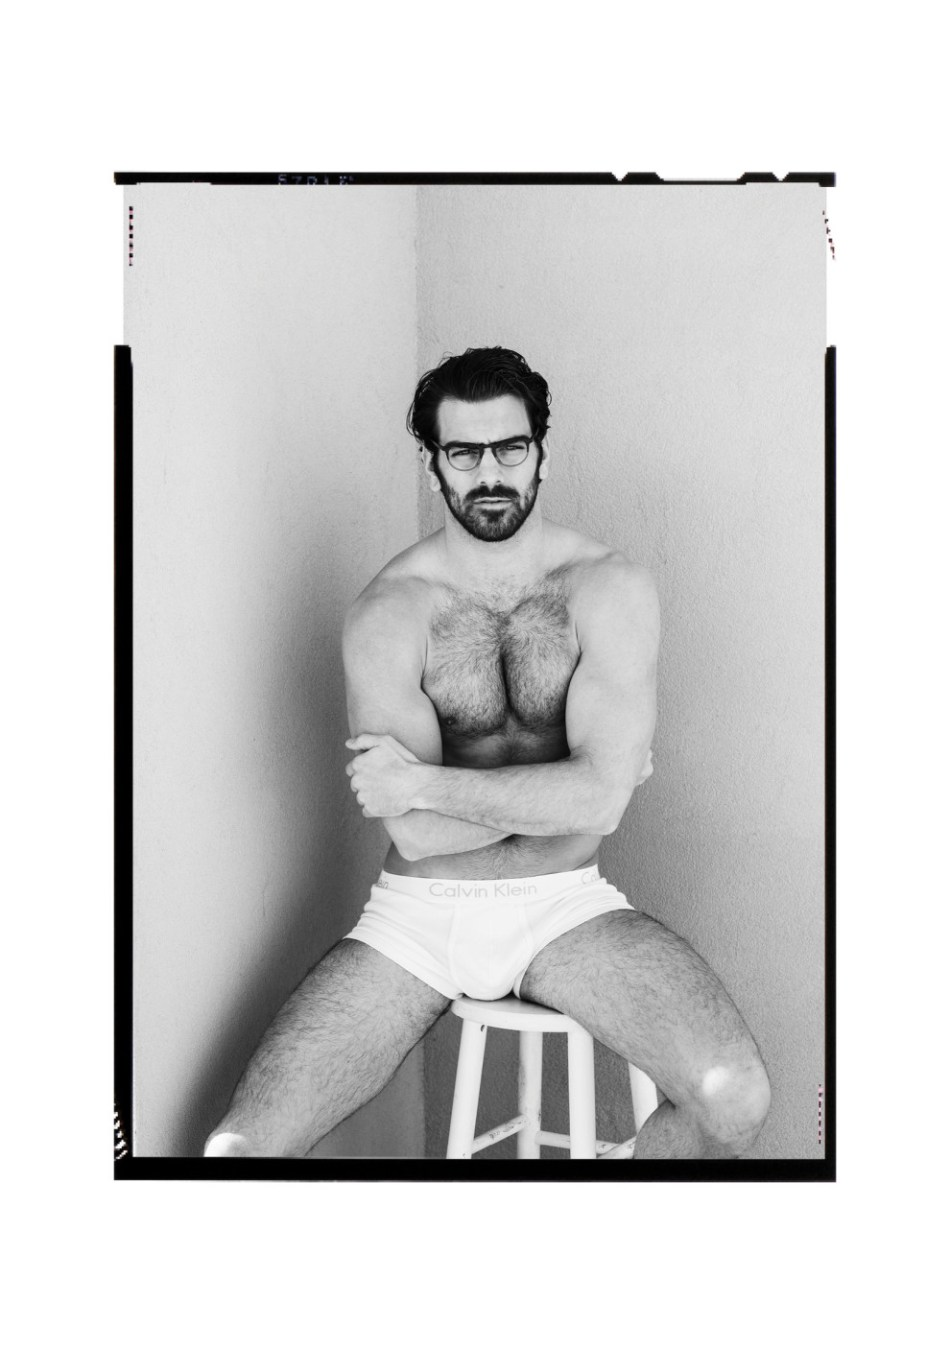 Nyle DiMarco by Taylor Miller for Buzzfeed8